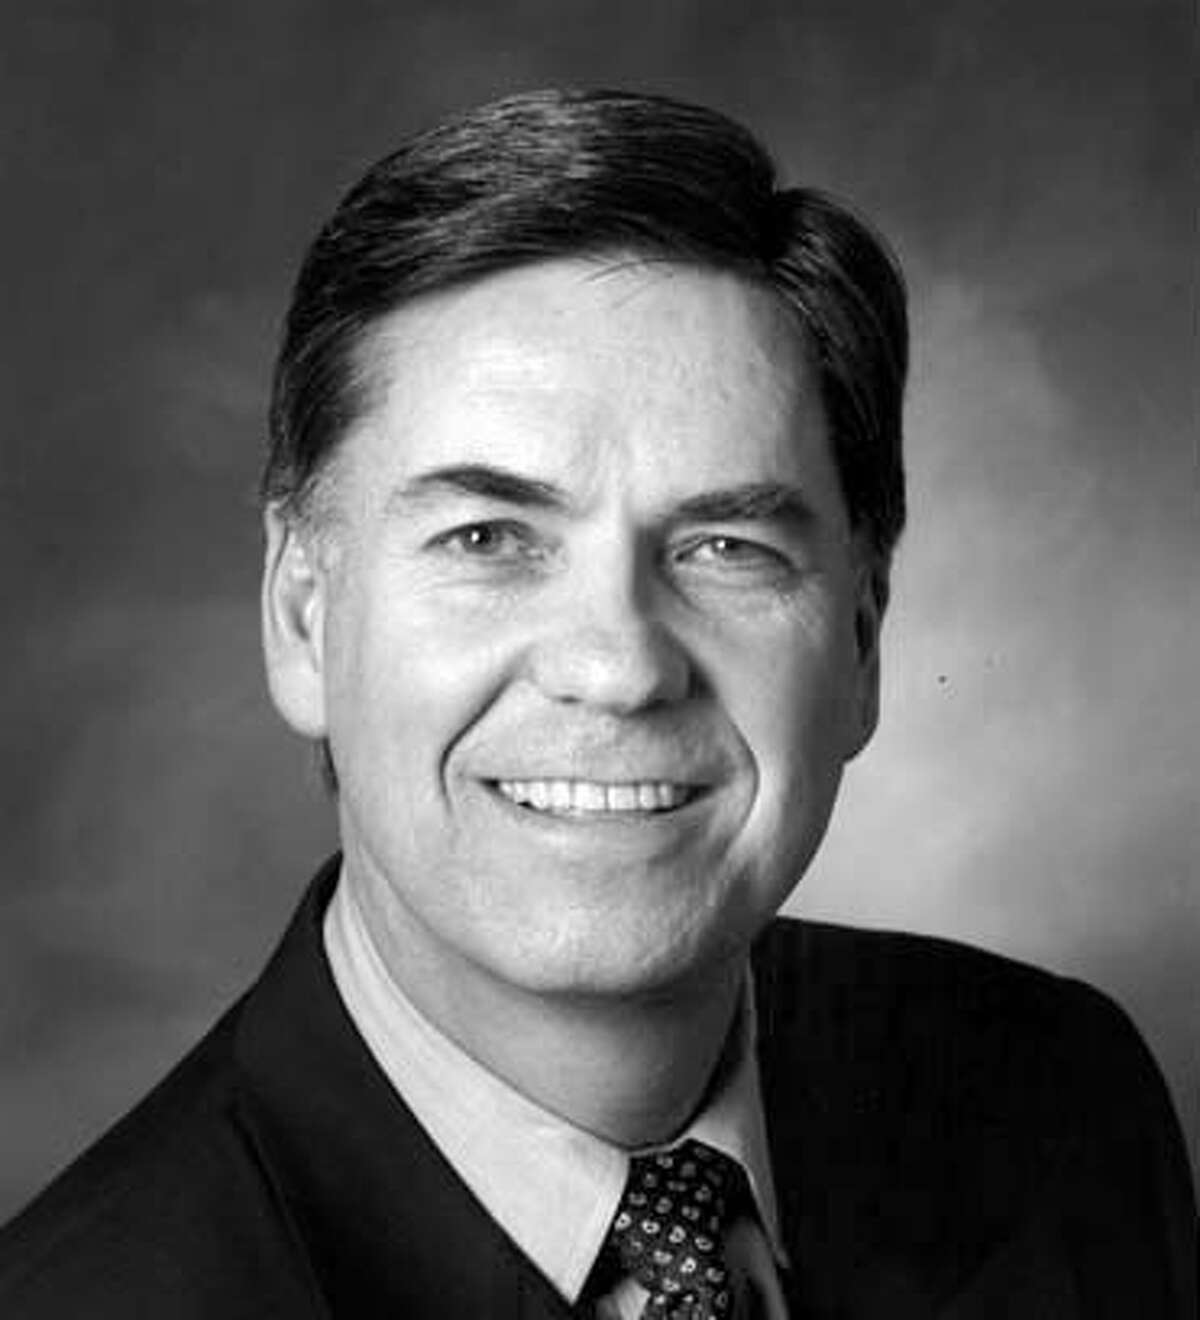 ANDERSON/B/12JUN97/BU/HO = FRED ANDERSON, CFO, APPLE ALSO RAN: 04/26/1999 CHRONICLE BUSINESS 500 section. CAT